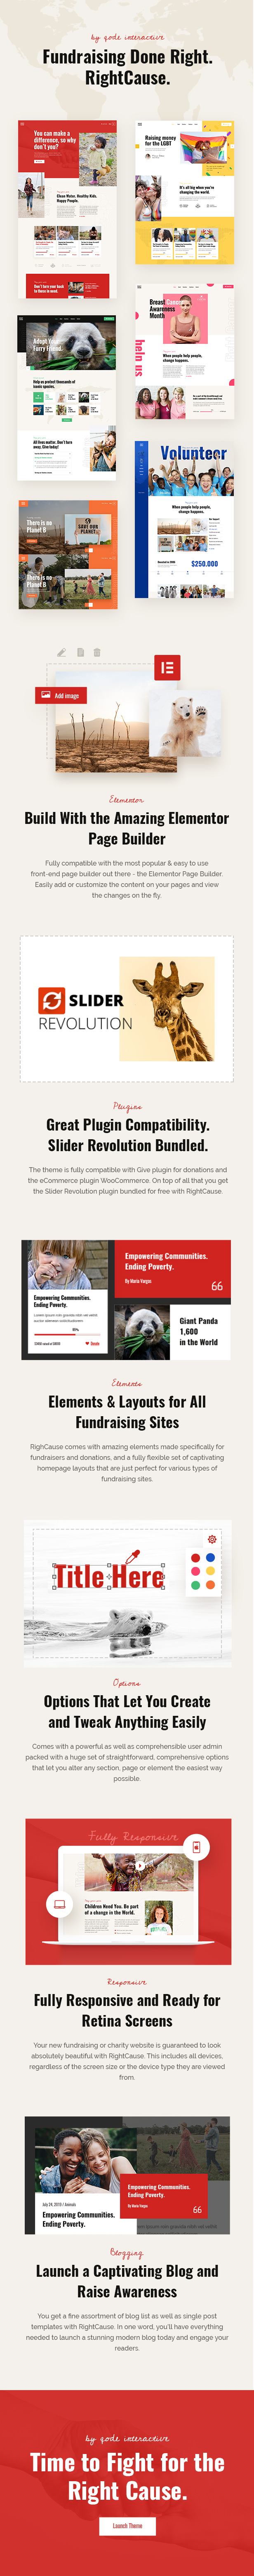 RightCause - Charity and Donation Theme - 2